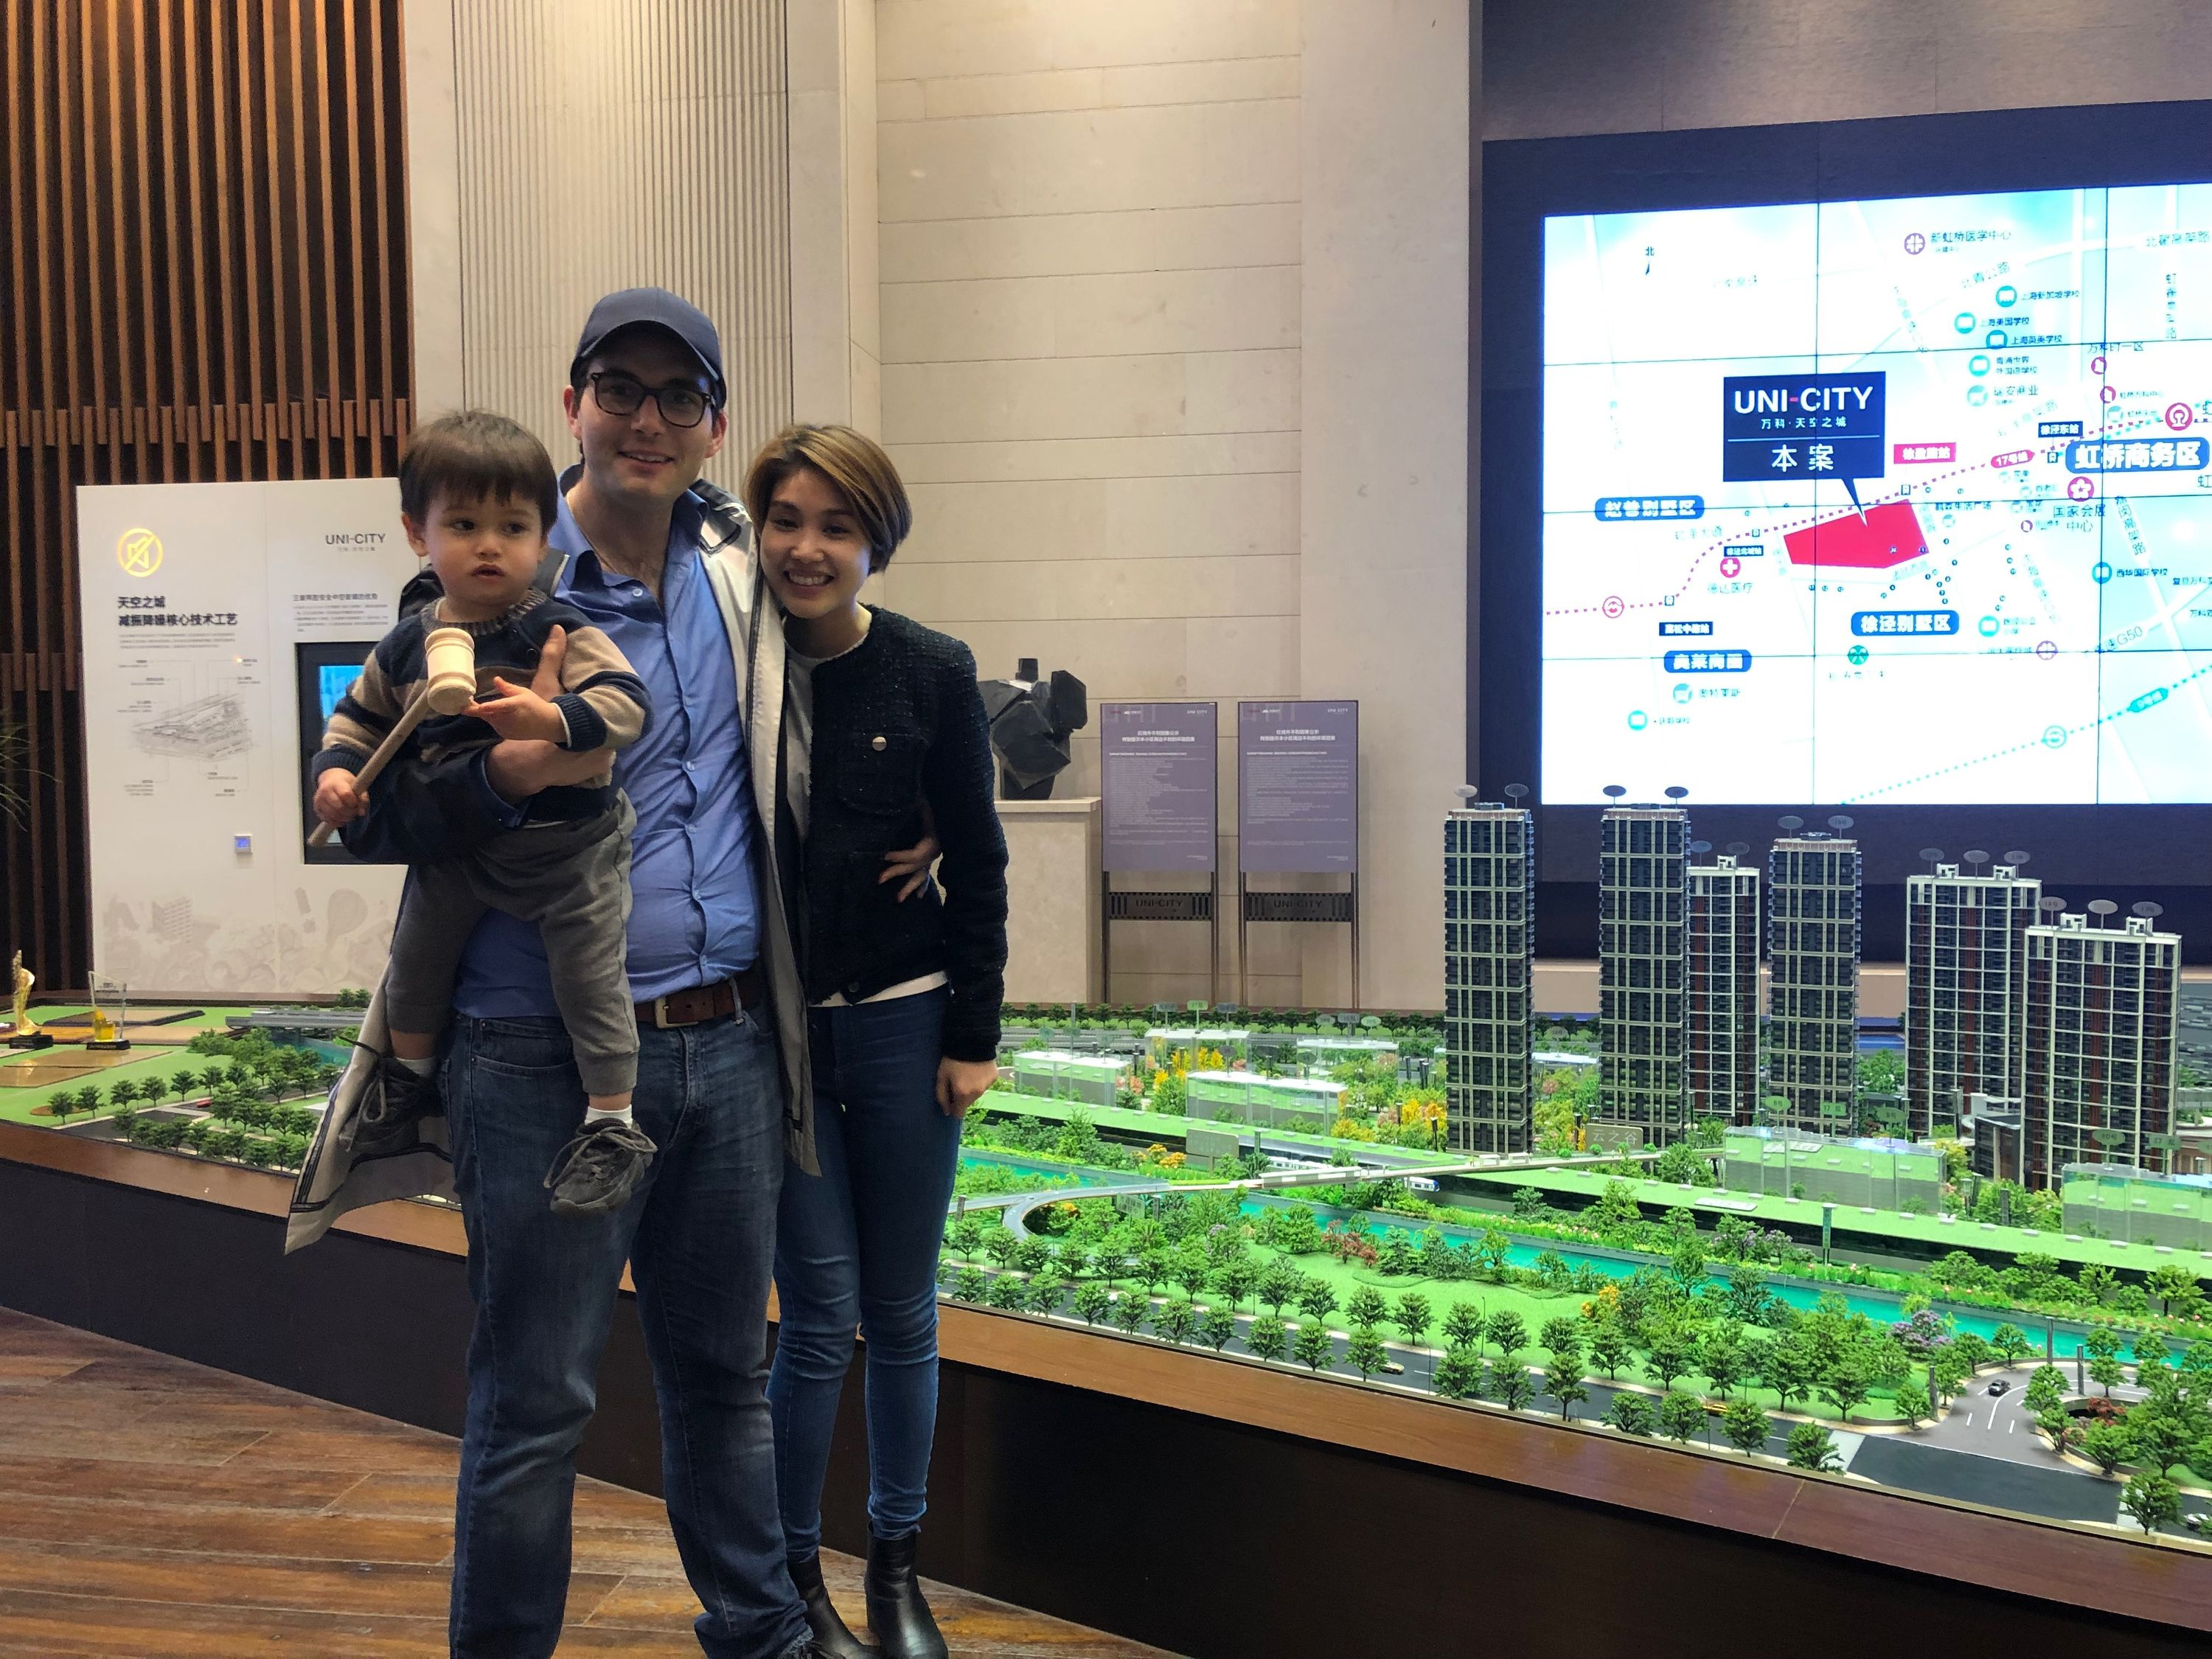 jade, eli and me buying real estate in china - hongqiao